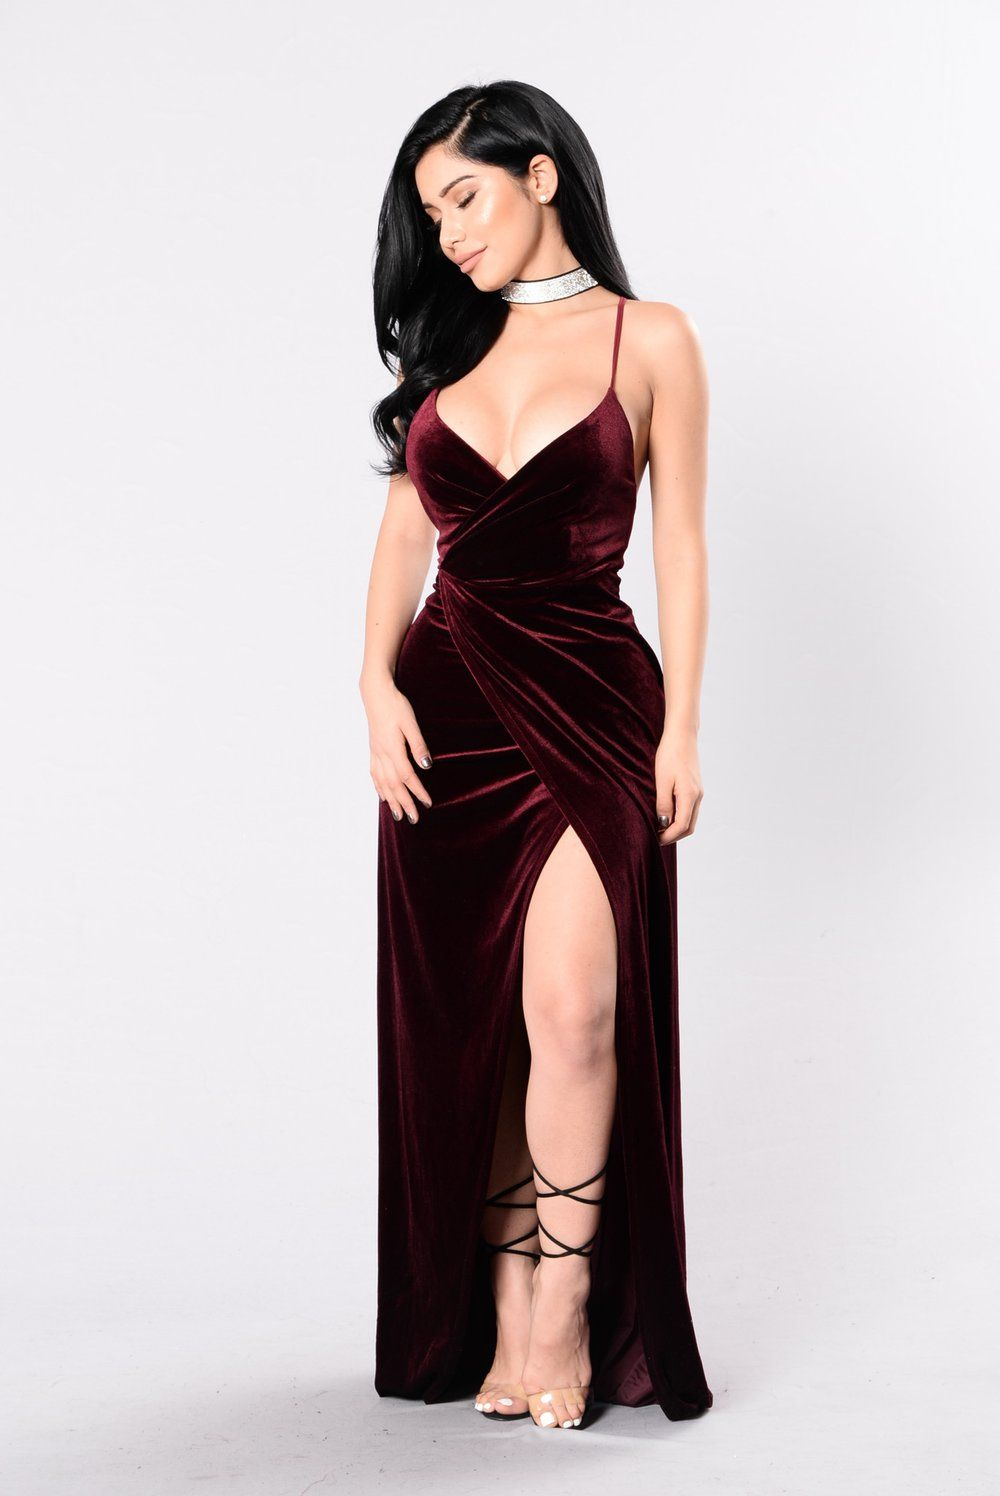 98cf6dfdf0 Wishful Thinking Dress - Burgundy. Available in Burgundy V Neckline Criss  Cross Back Thigh High Slit Maxi Length Velvet ...